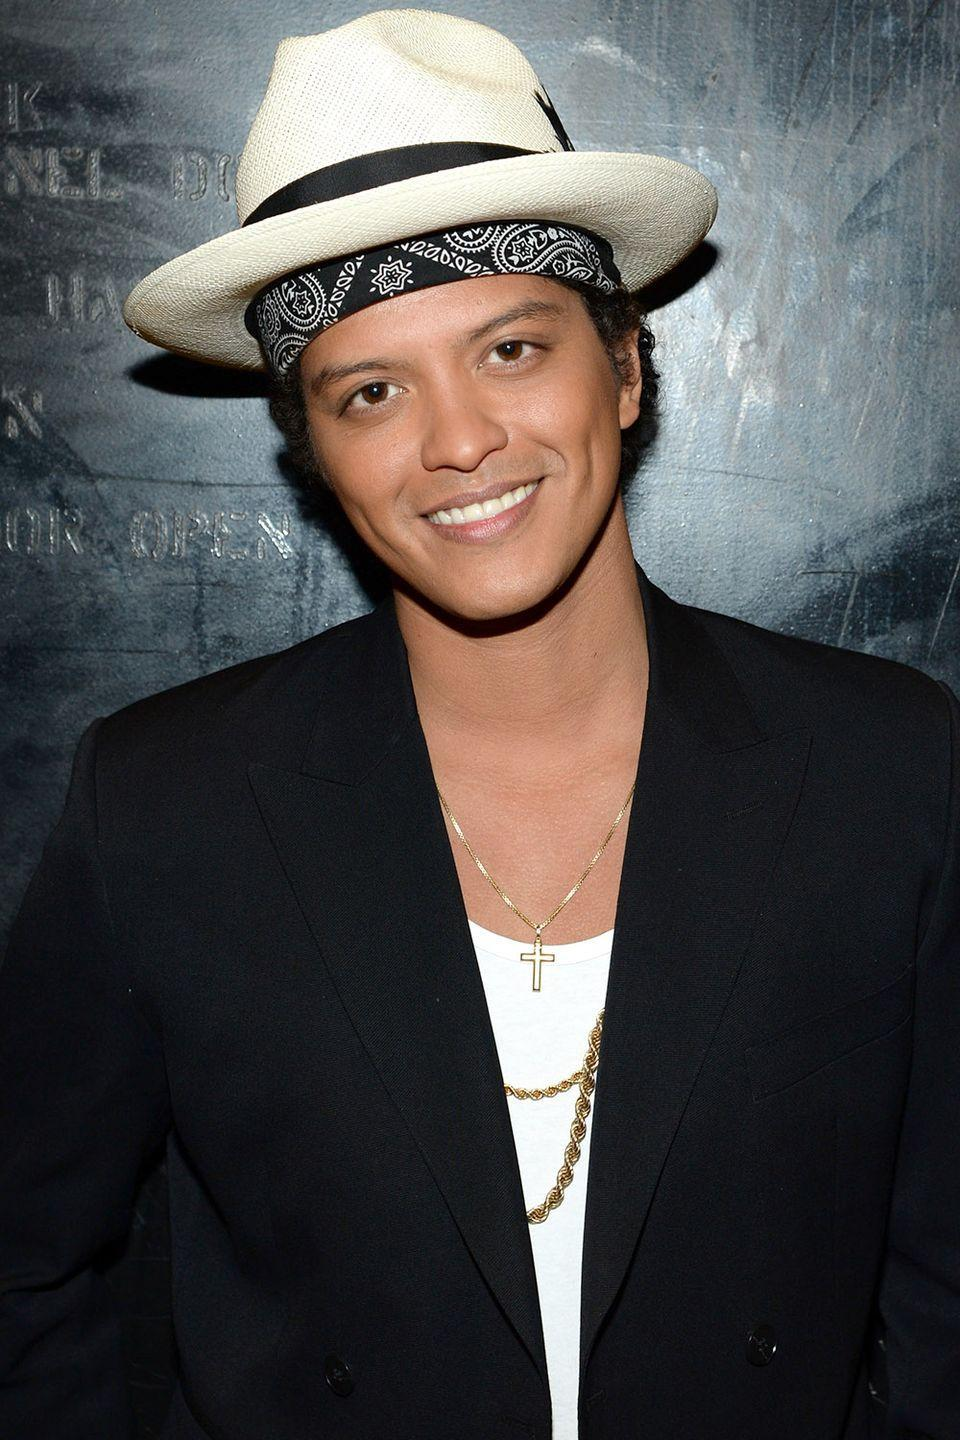 "<p><strong>Born</strong>: Peter Gene Hernandez</p><p>In a 2013 interview with <em><a href=""https://www.gq.com/story/bruno-mars-interview-gq-april-2013#ixzz2OD5xERaE"" rel=""nofollow noopener"" target=""_blank"" data-ylk=""slk:GQ"" class=""link rapid-noclick-resp"">GQ</a></em>, the ""Finesse"" singer explained that he's been Bruno for almost his entire life. Though he was born Peter Hernandez, he received the nickname Bruno because as a toddler, he looked like the famous wrestler Bruno Sammartino. But Bruno Hernandez wasn't cutting it in the music world. ""Your last name's Hernandez, maybe you should do this Latin music, this Spanish music... Enrique's so hot right now,"" the singer told the publication of the responses he received while trying to start his music career. Thus, he adopted the Mars surname.</p>"